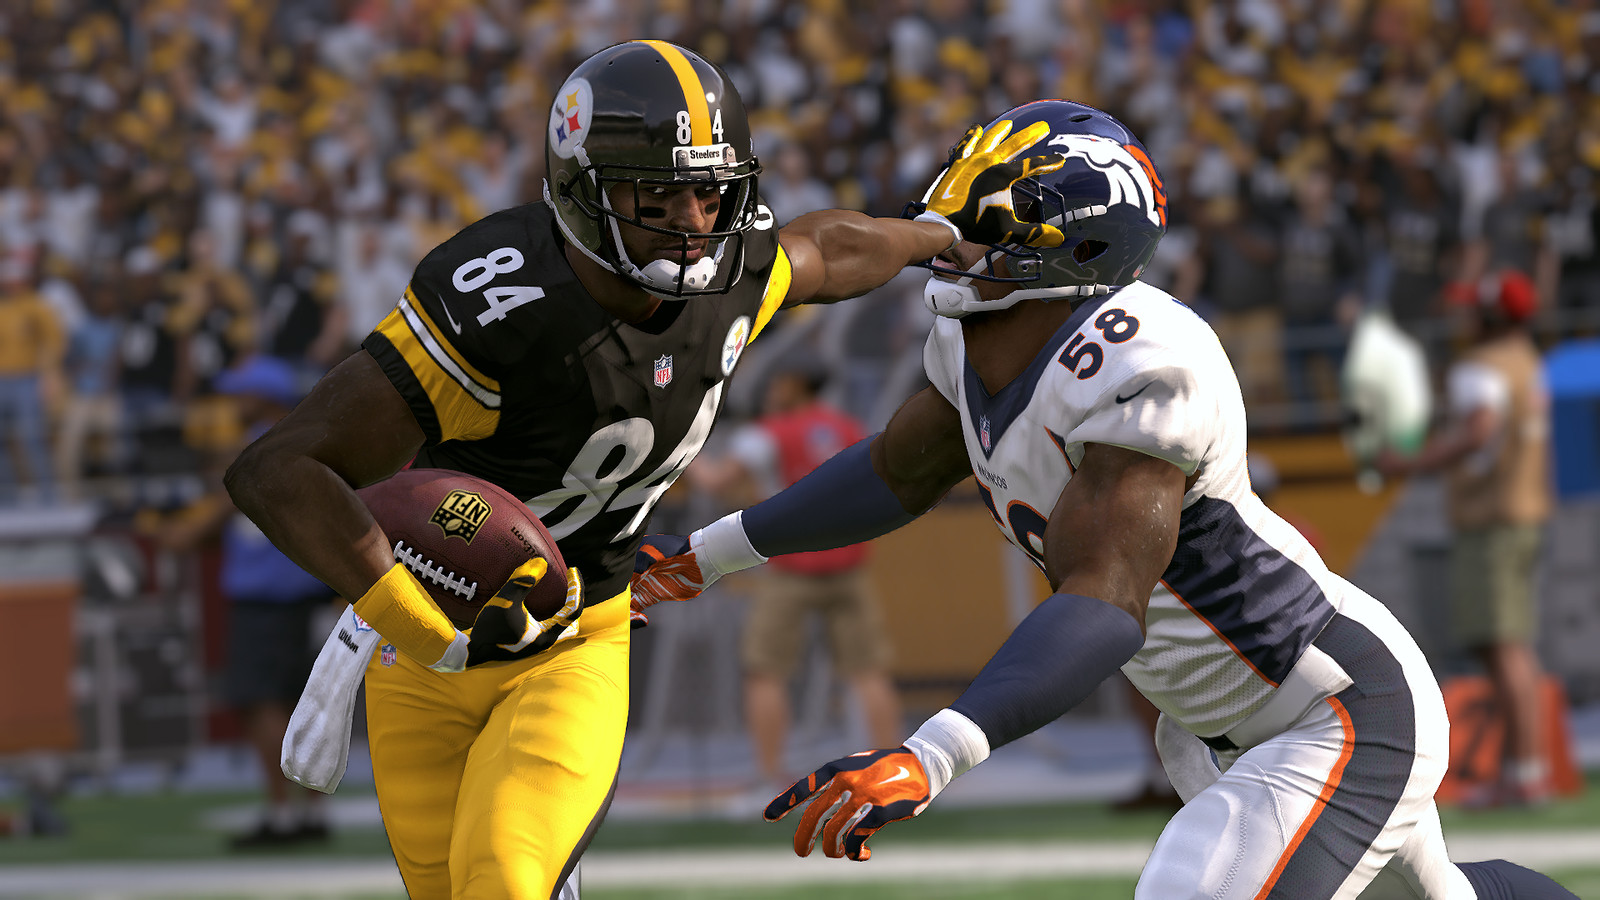 EA fines Madden Bowl winner $3K for 'inappropriate' tweets (update)